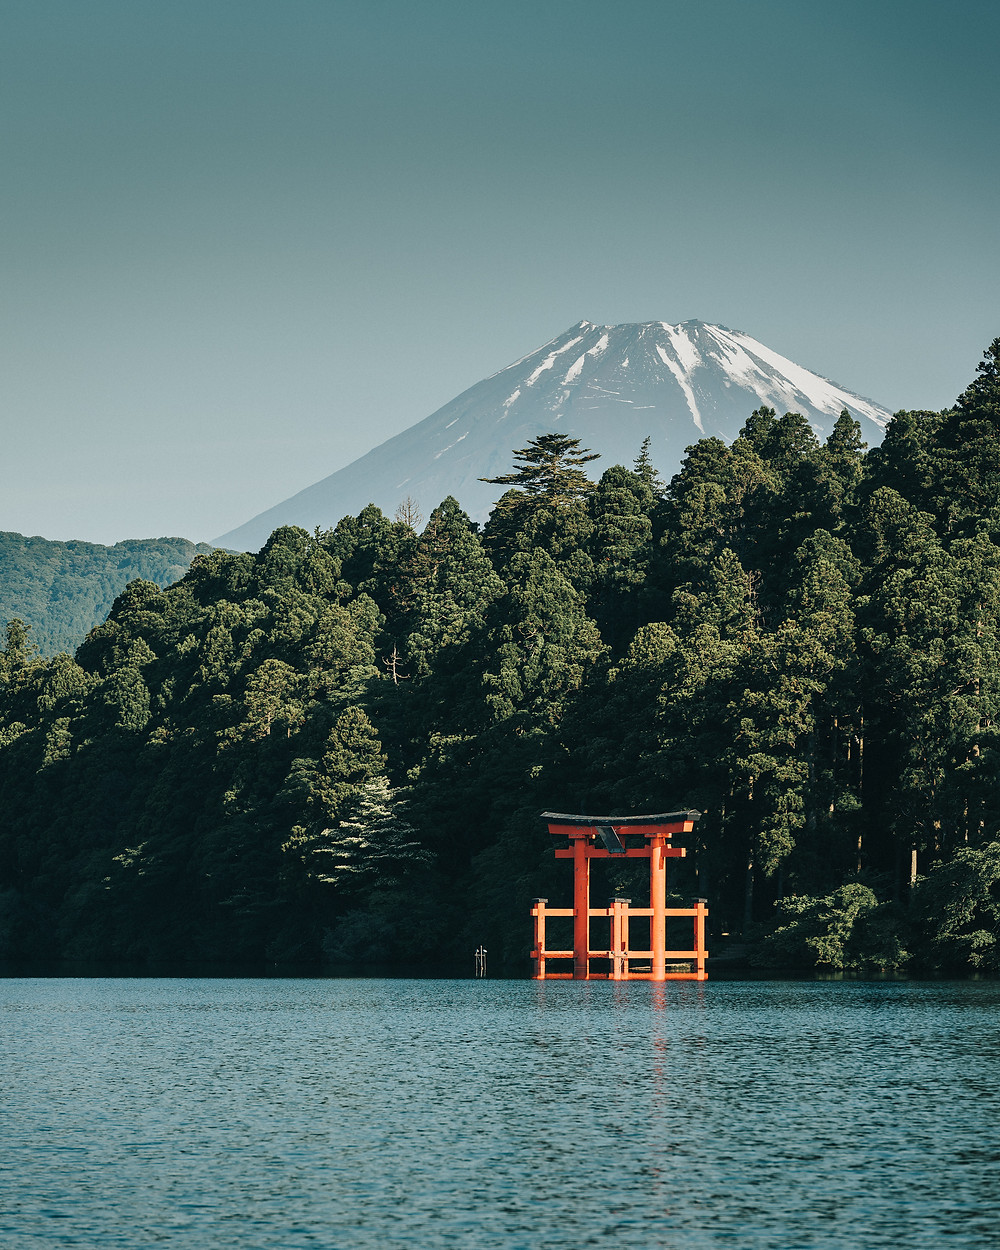 A view of the mount-fuji from Hakone